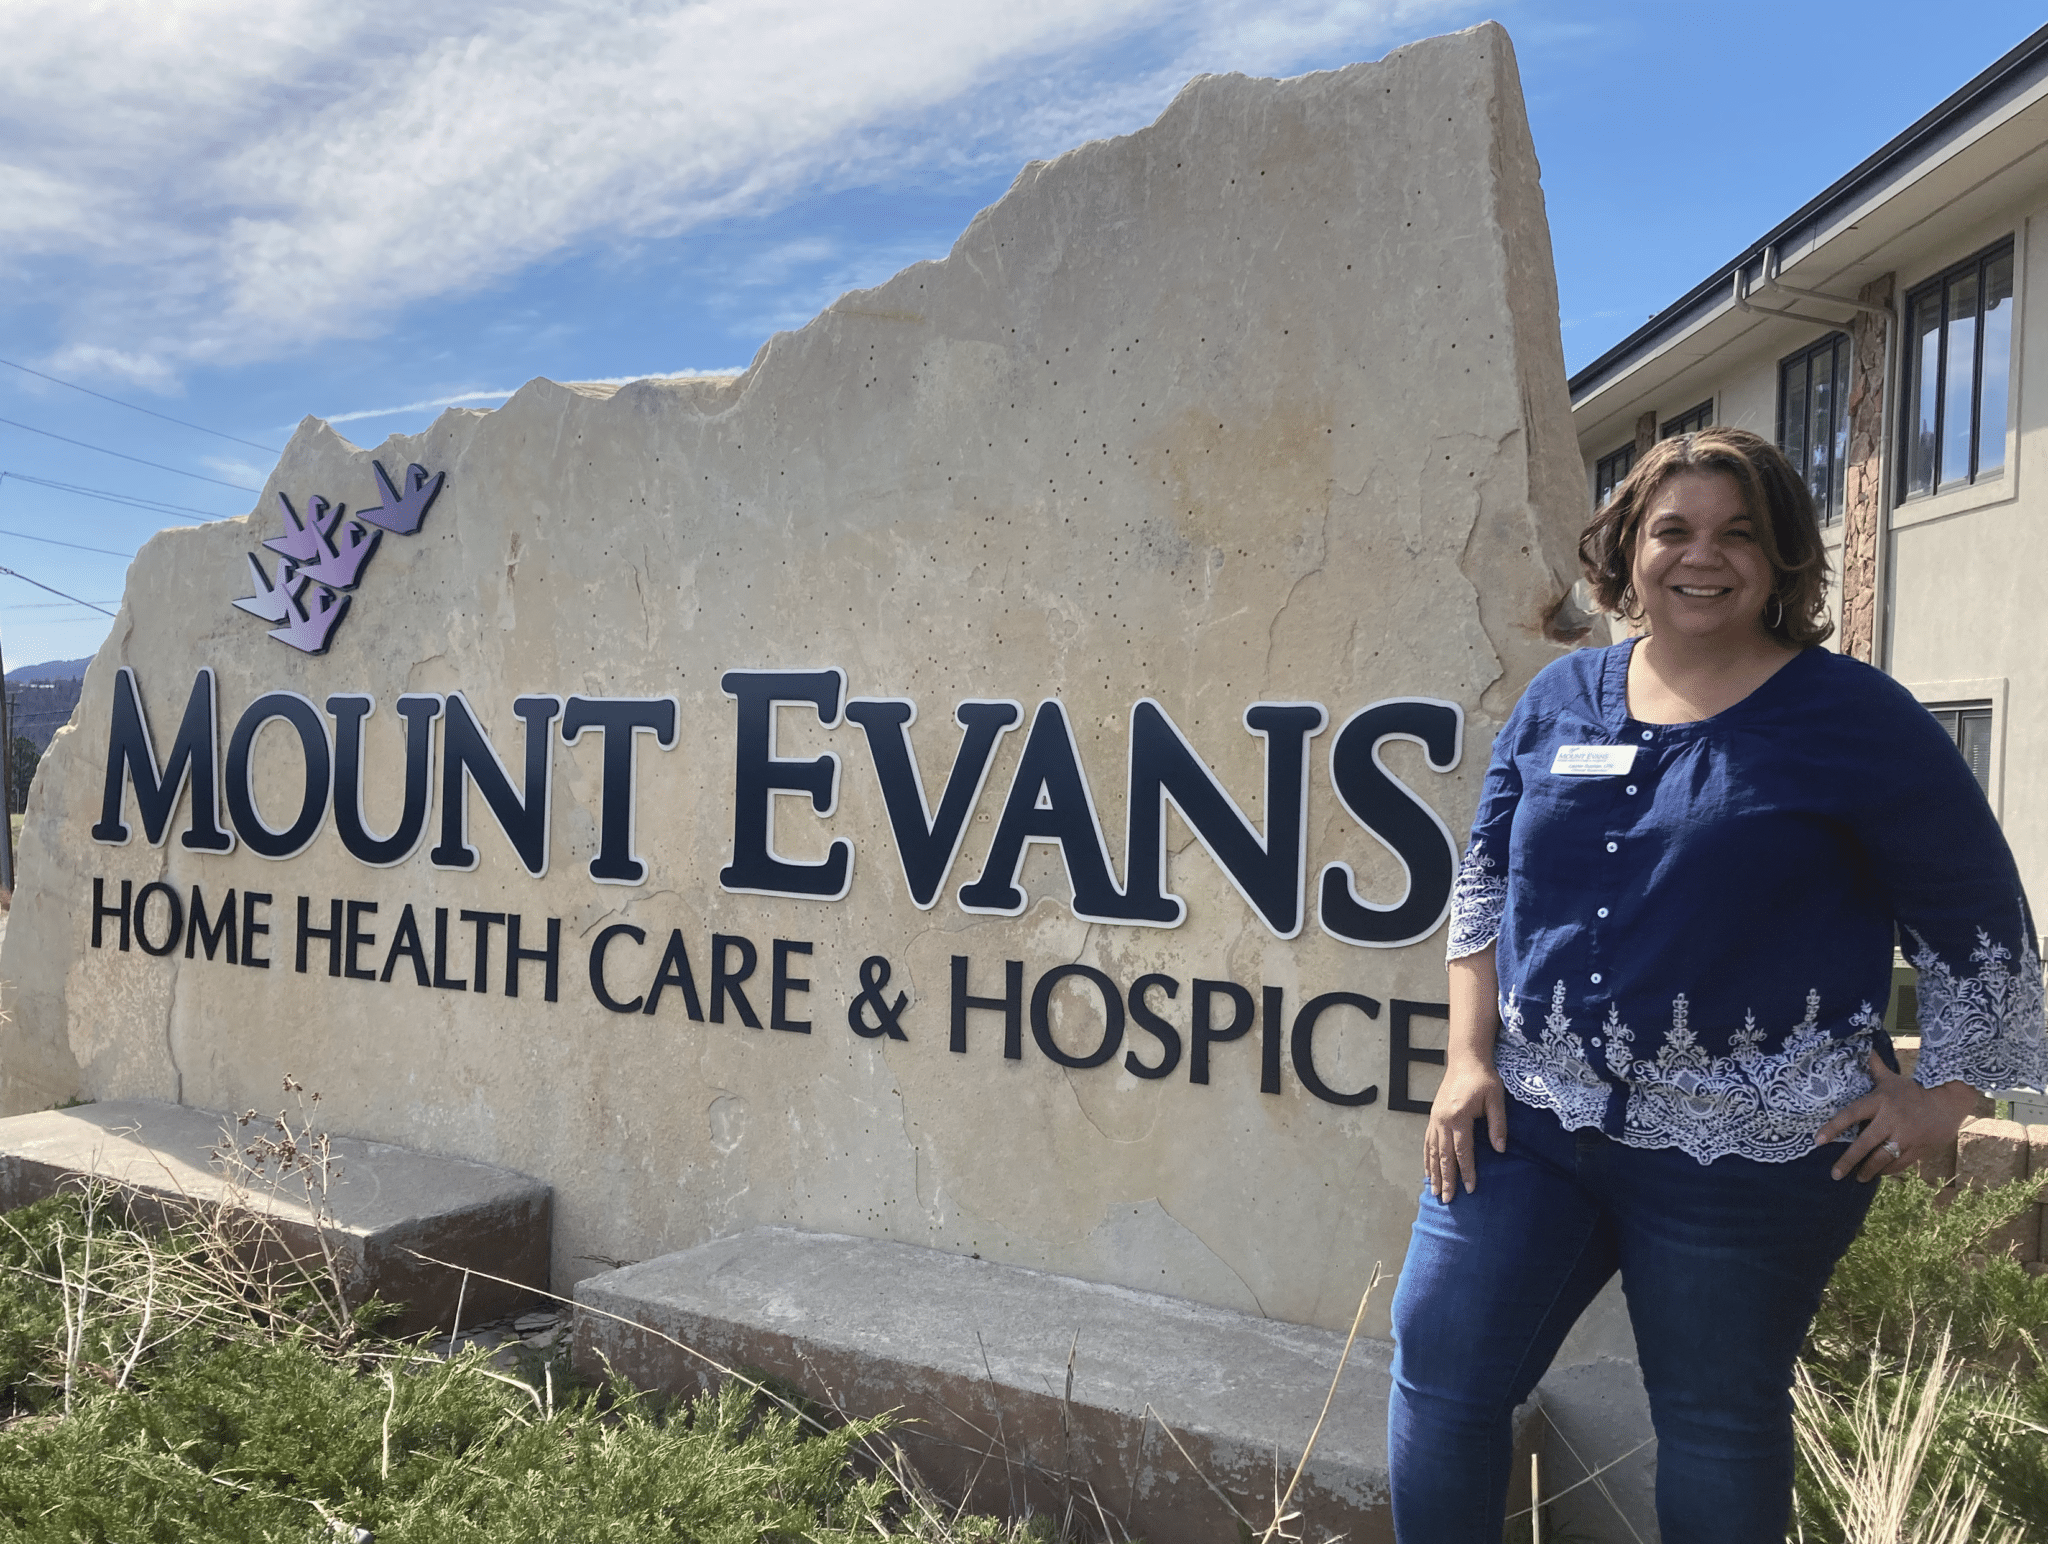 Lauren Guzman, Clinical Supervisor, LPN in front of the Mount Evans Home Health Care & Hospice sign